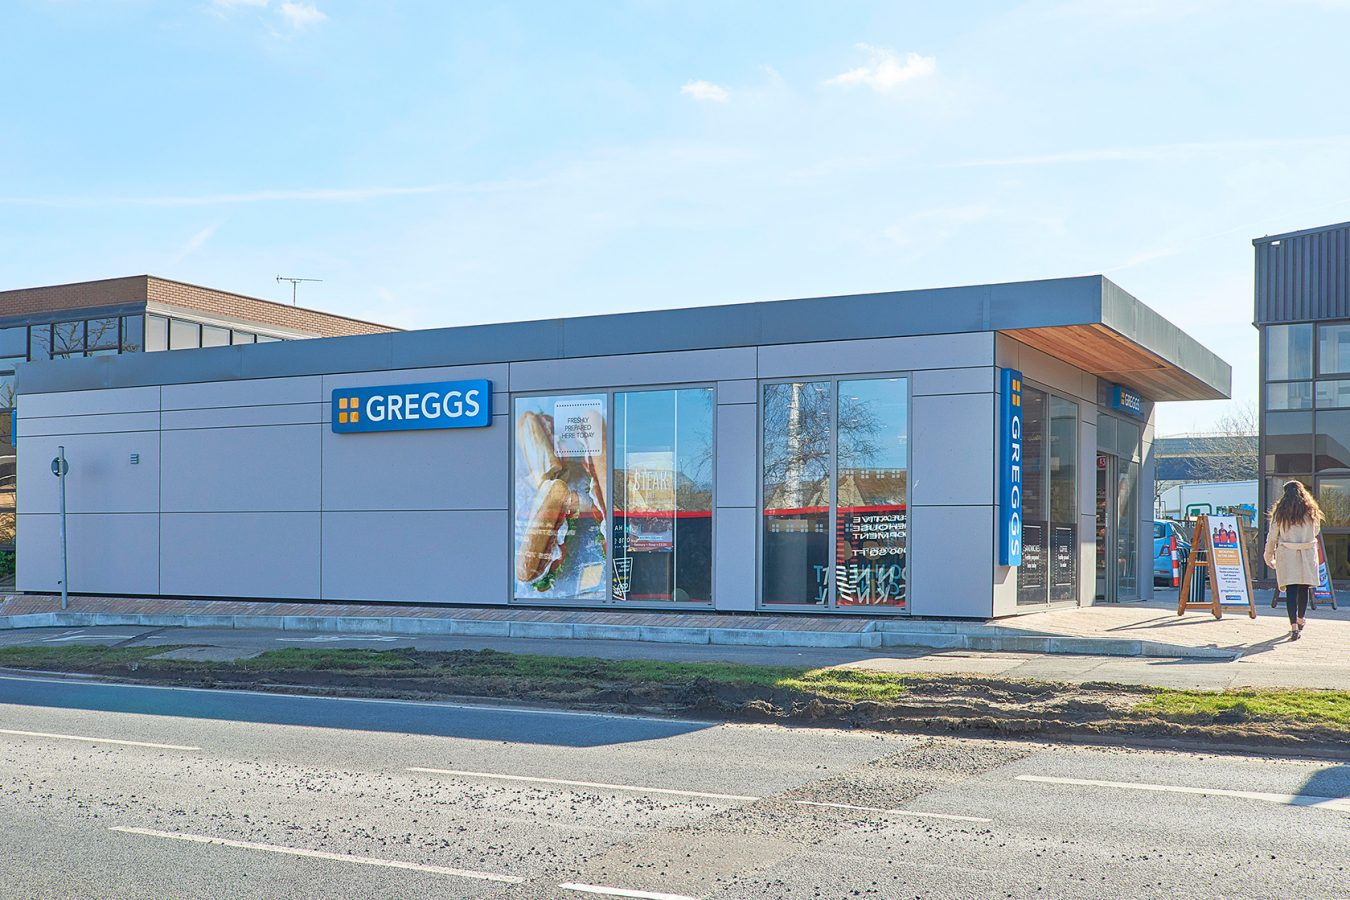 Industrial refurbishment unit for Greggs near Bracknell